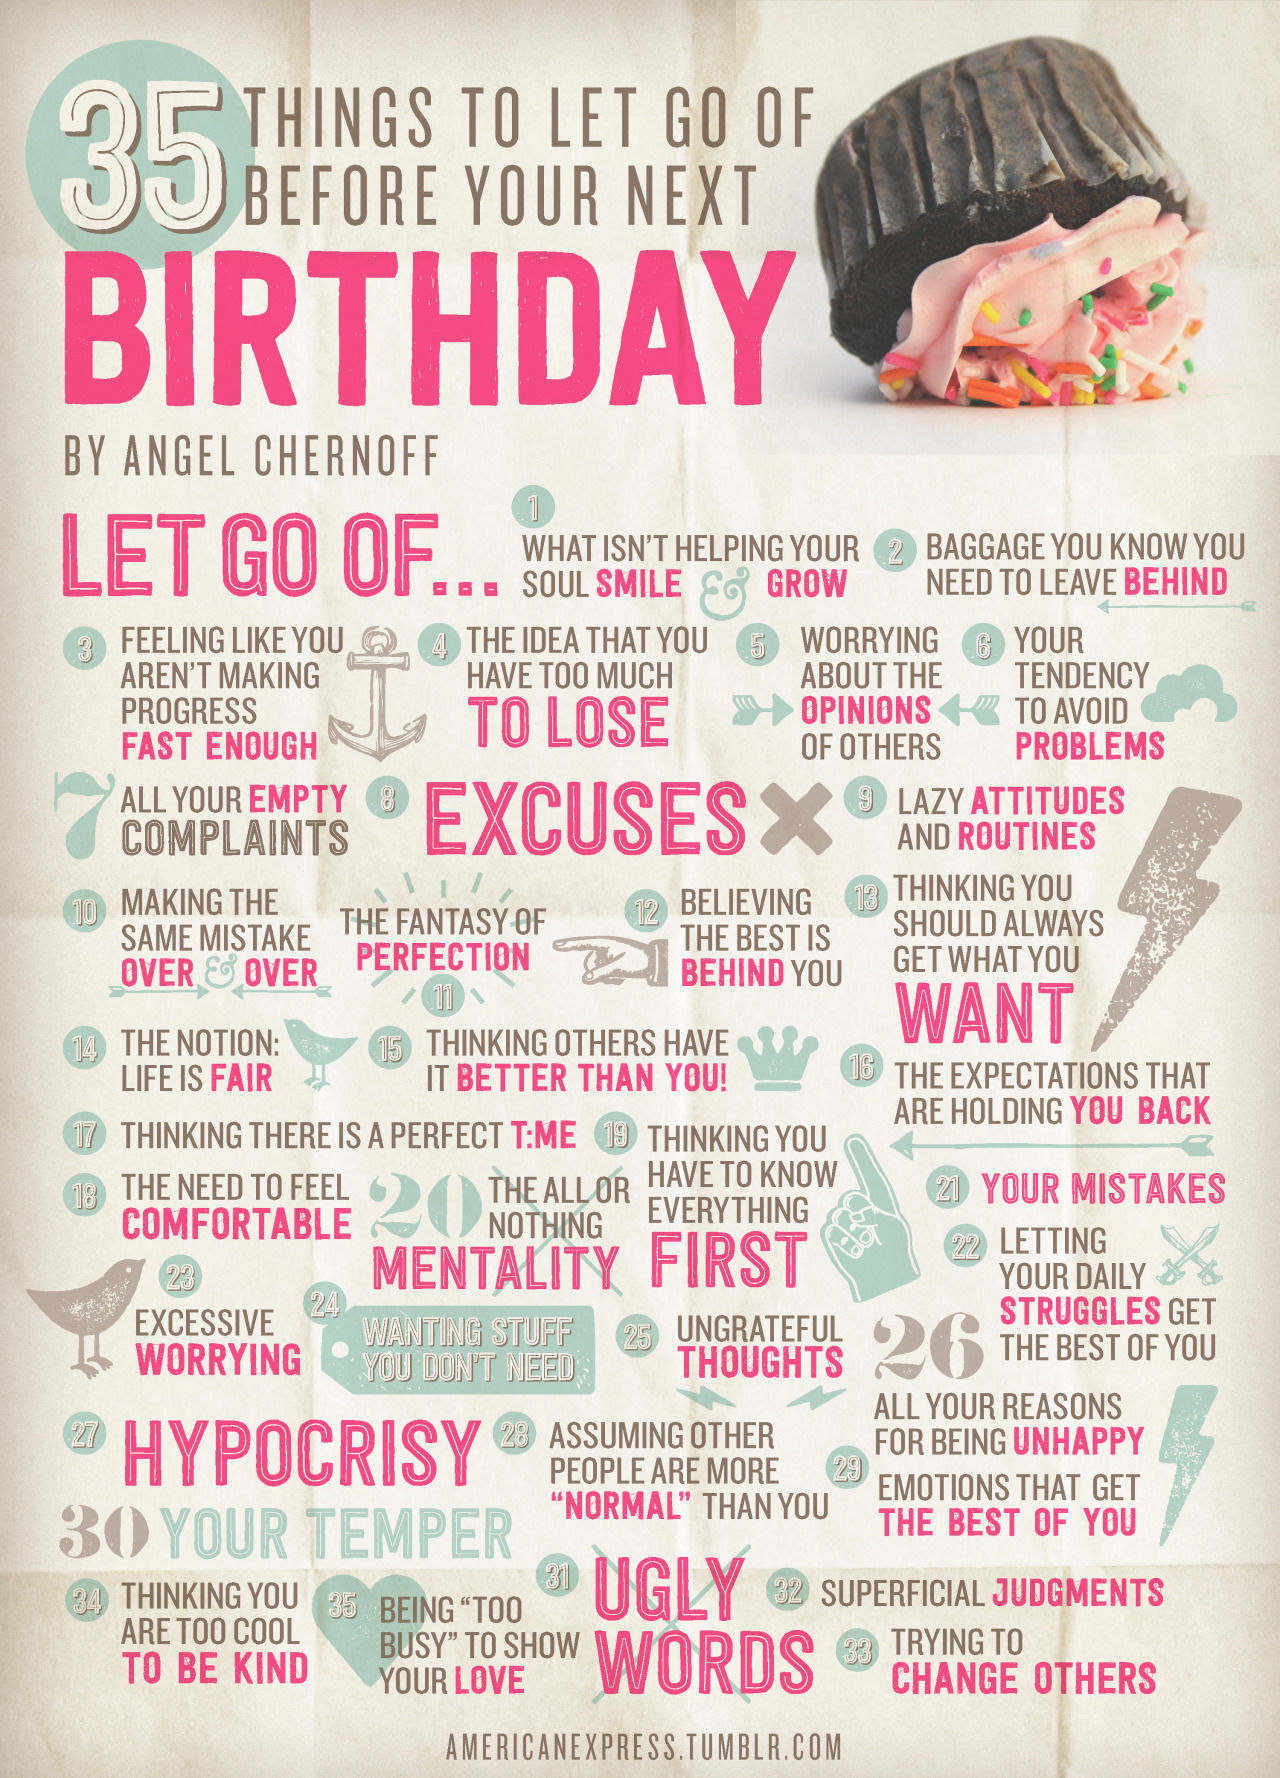 35 things to let go of before your next birthday pictures photos